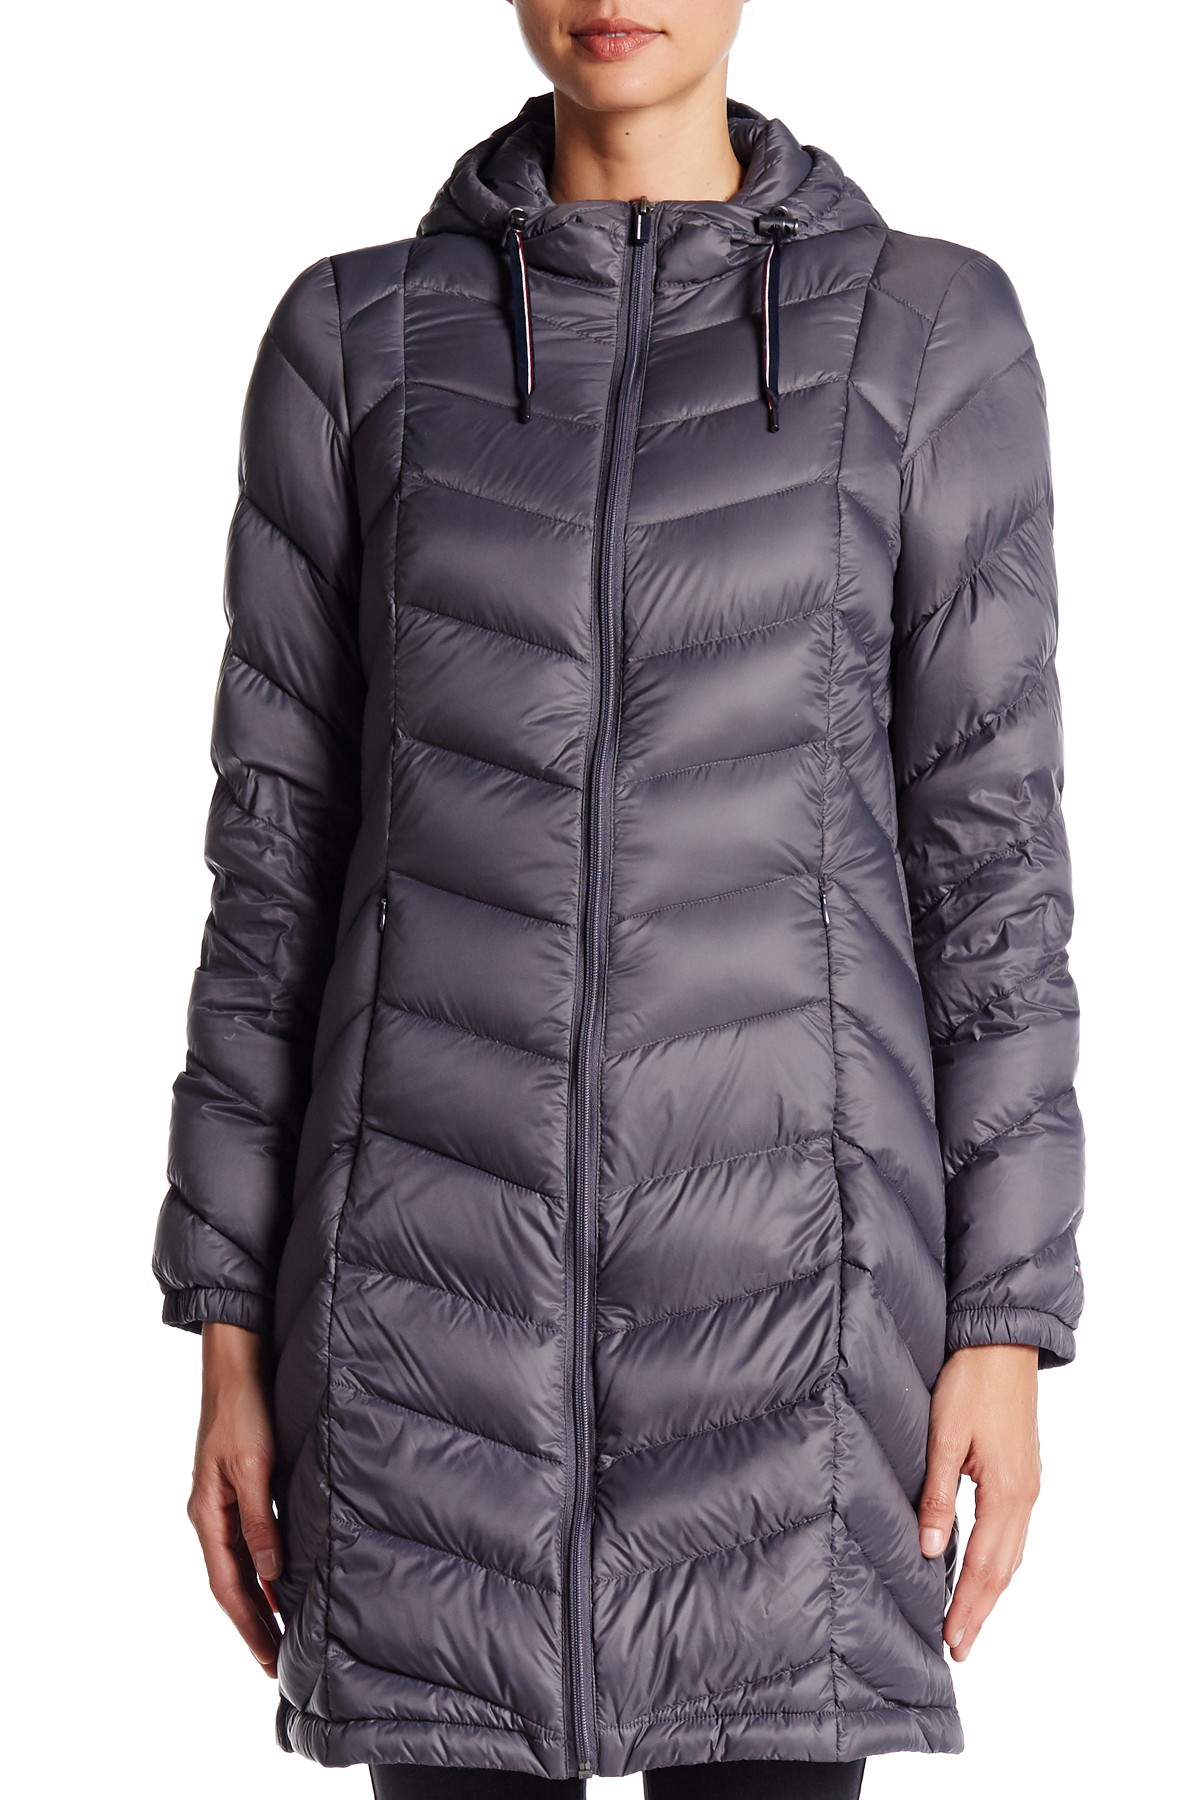 e8496cd3b Tommy Hilfiger Gray Packable Natural Down Quilted Long Jacket